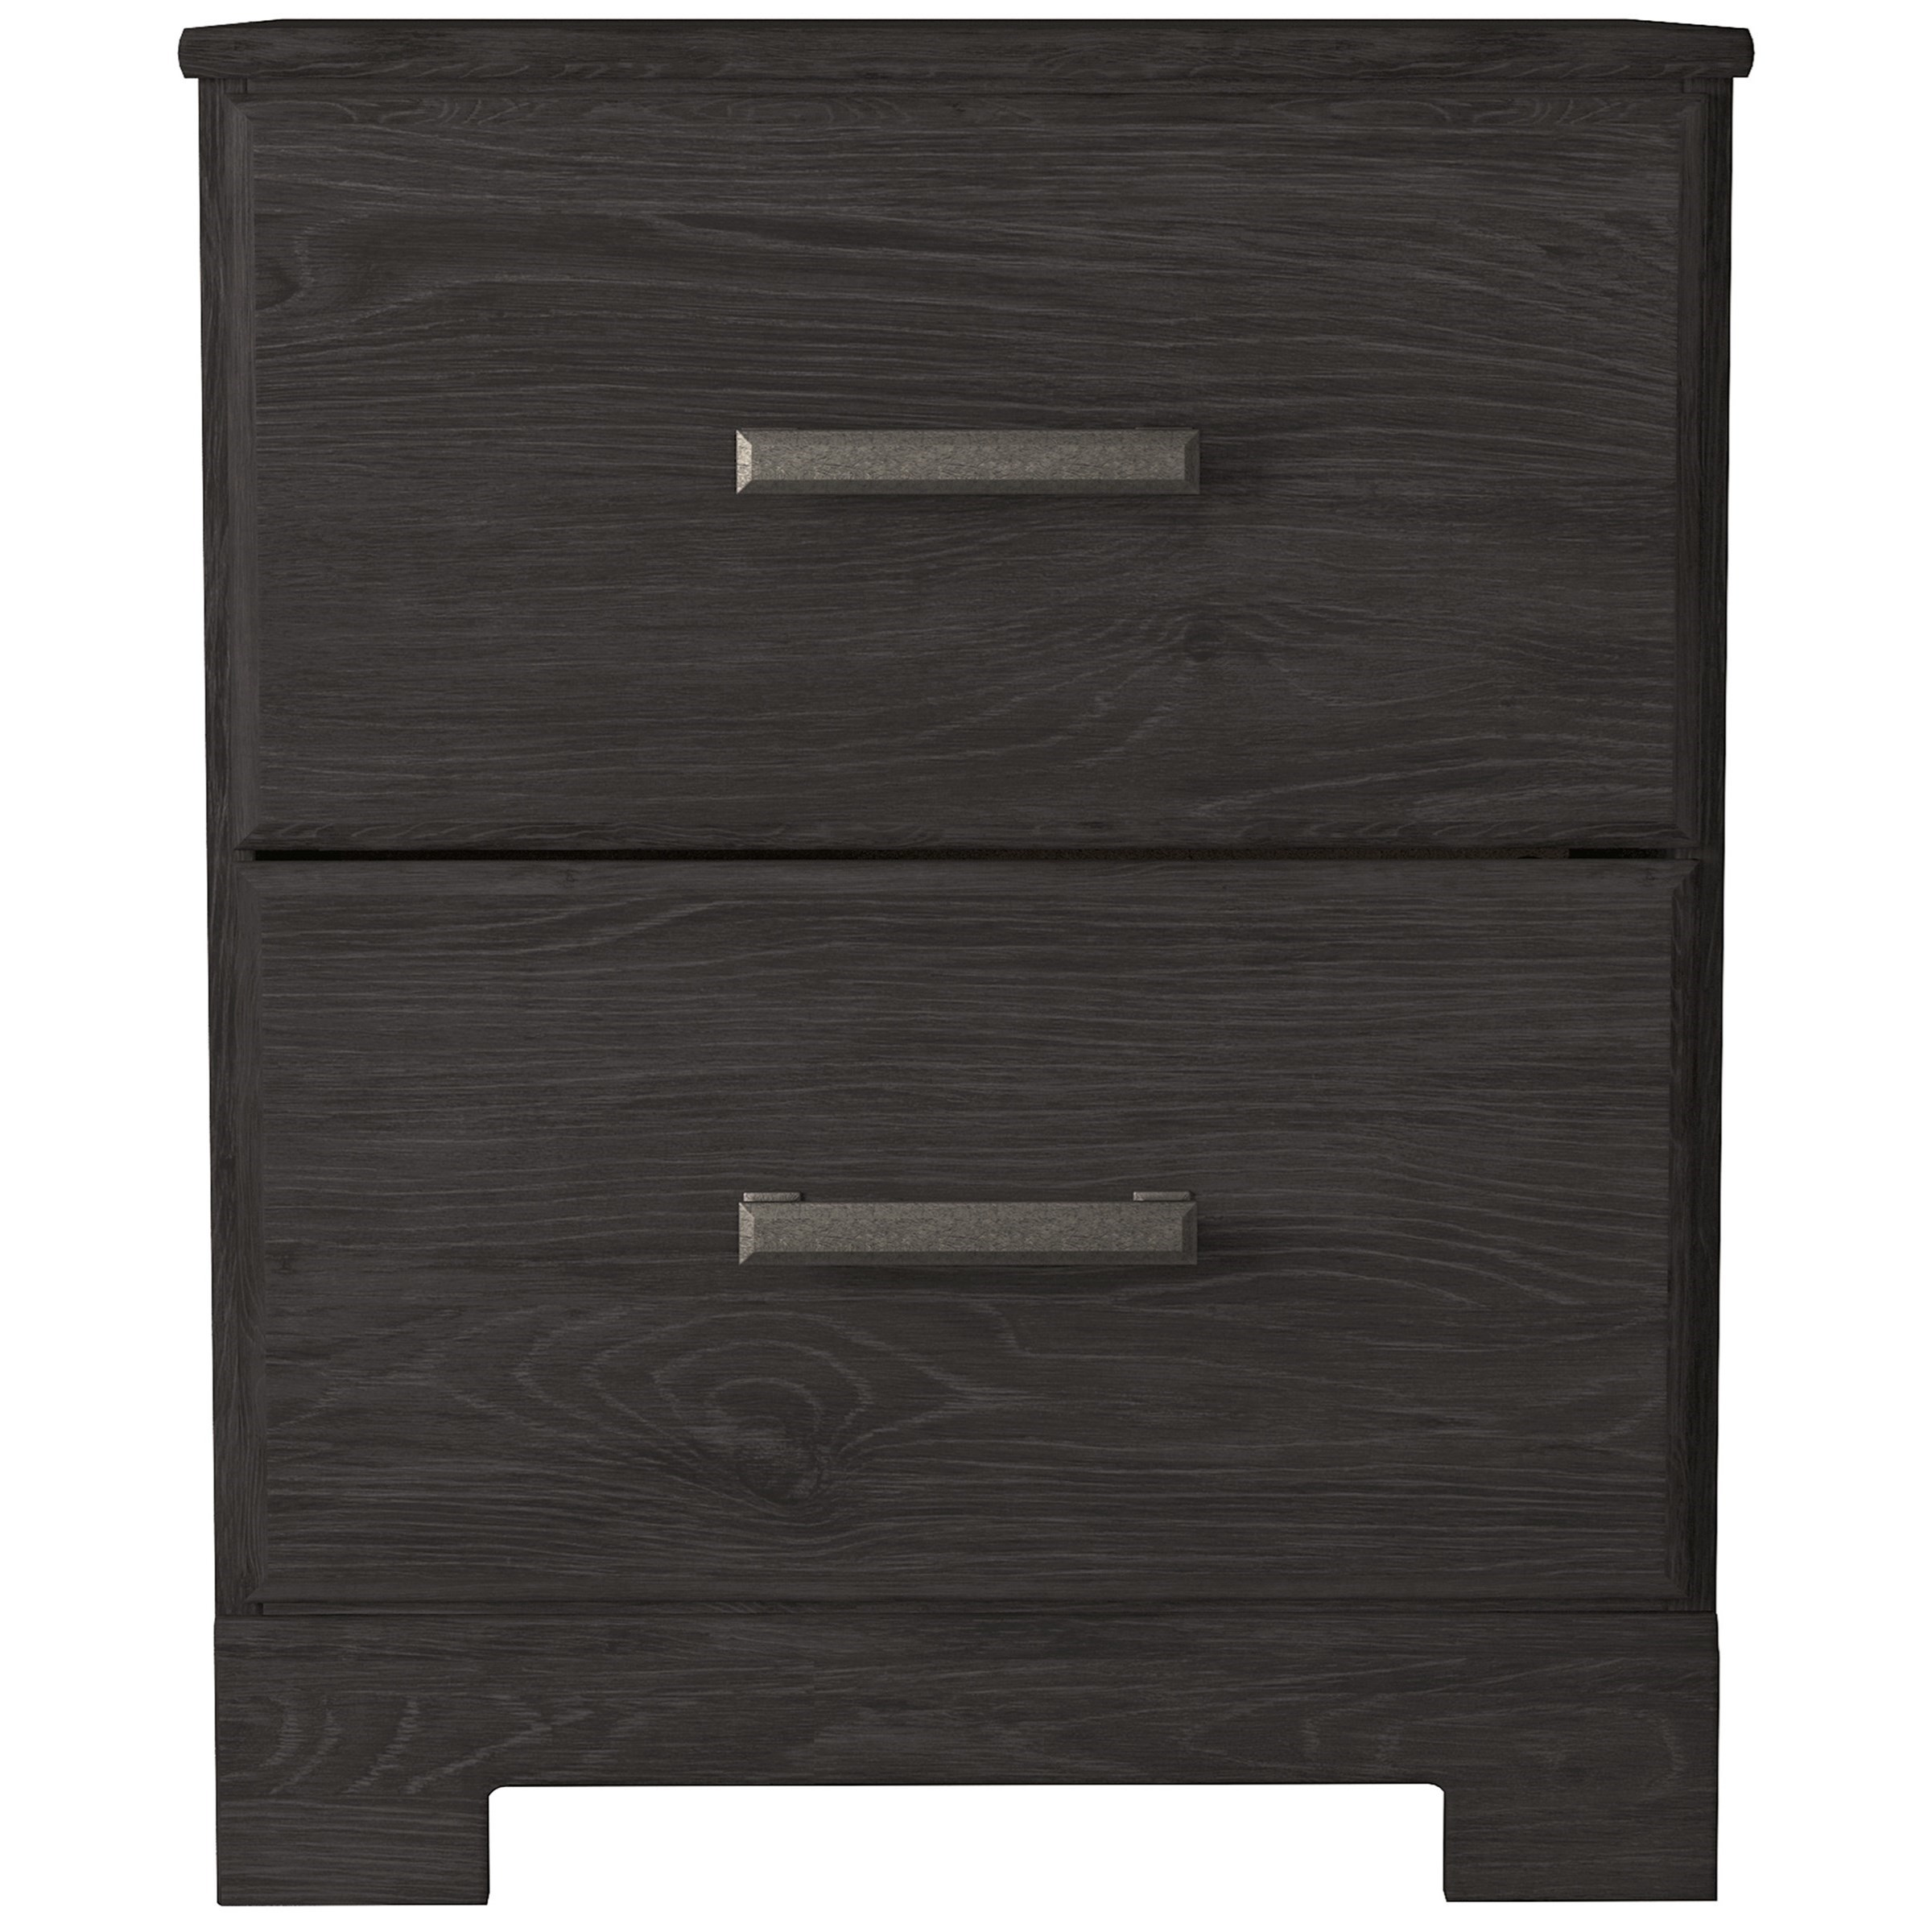 Belachime 2-Drawer Nightstand by Signature Design by Ashley at Standard Furniture